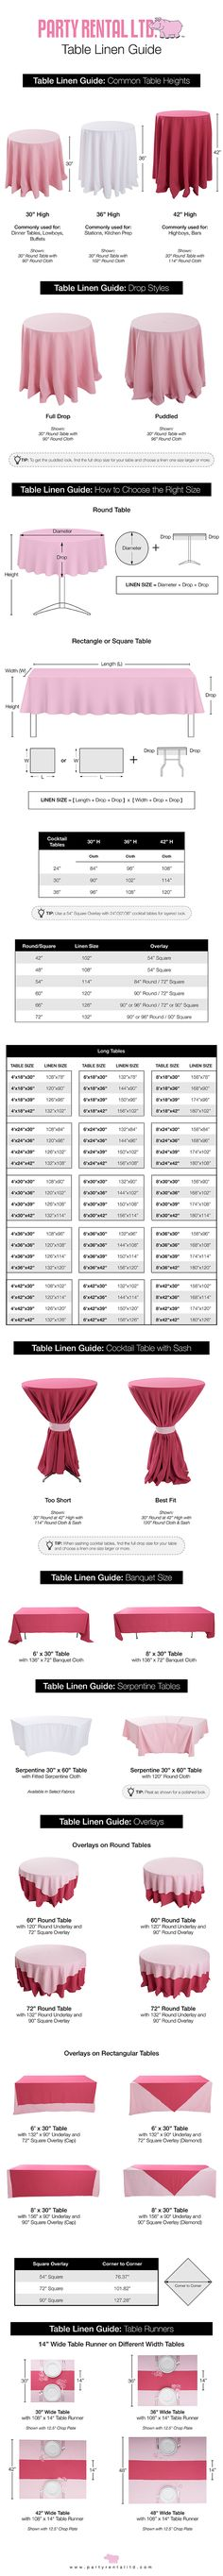 Everything you ever wanted to know about Table Linen Sizes, answering the question: What size tablecloths do I need for my event? || The Ultimate Guide to Table Linen Sizes is your guide you choosing tablecloth sizes for weddings and events.